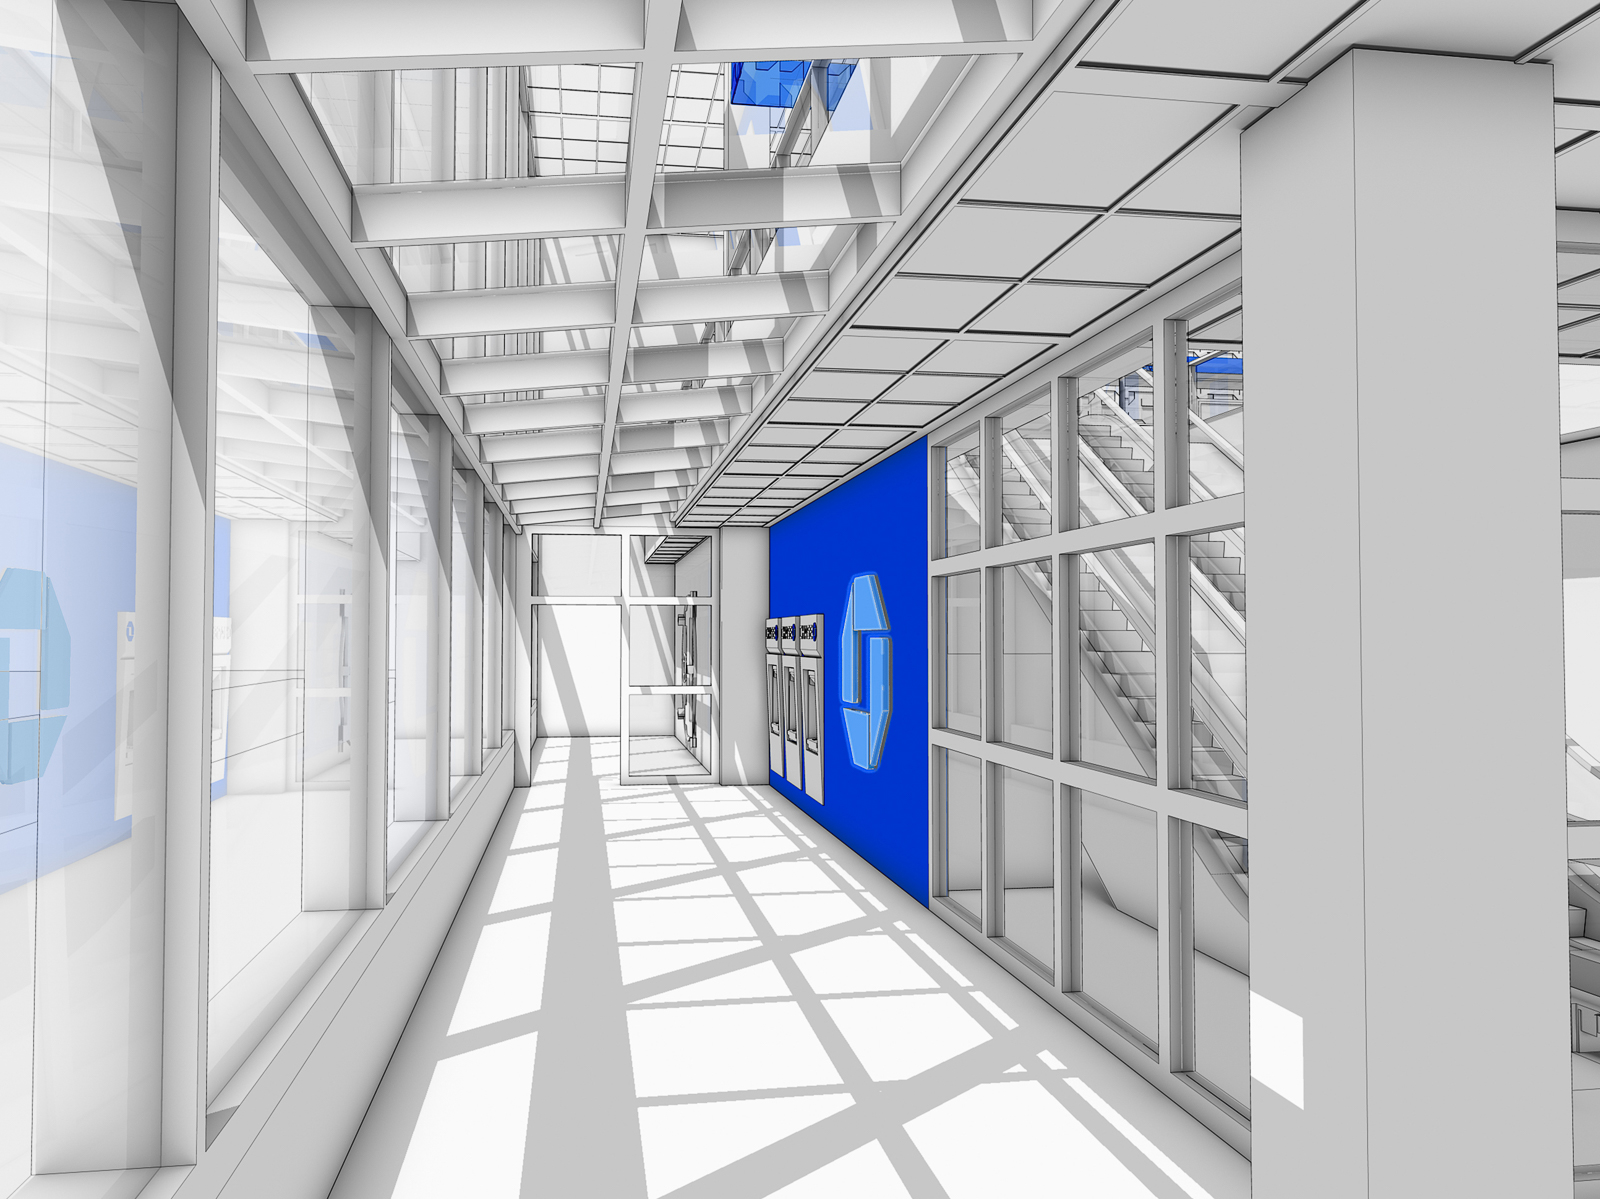 Chase - Glass House - cam12 Interior Perspective (18x24)